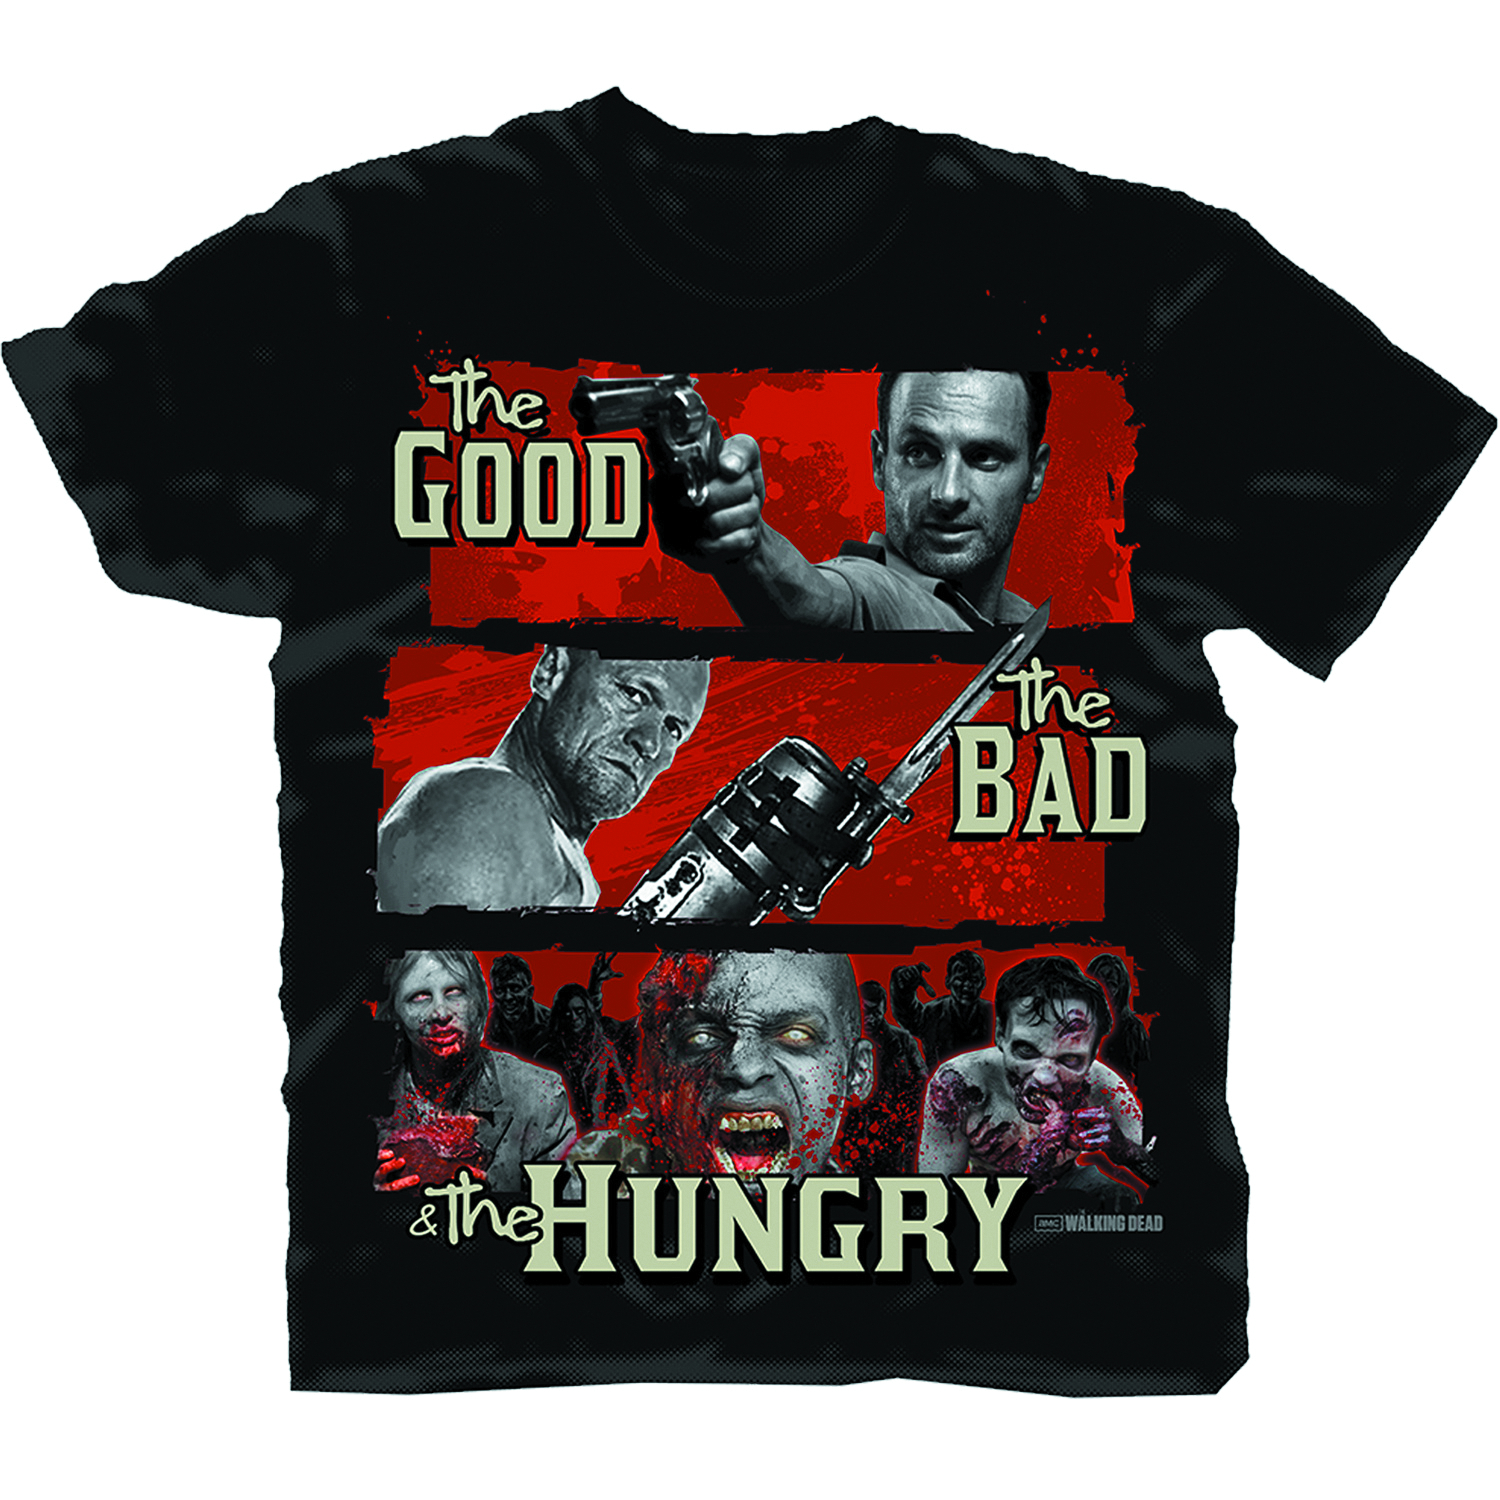 WALKING DEAD GOOD BAD HUNGRY PX BLK T/S LG